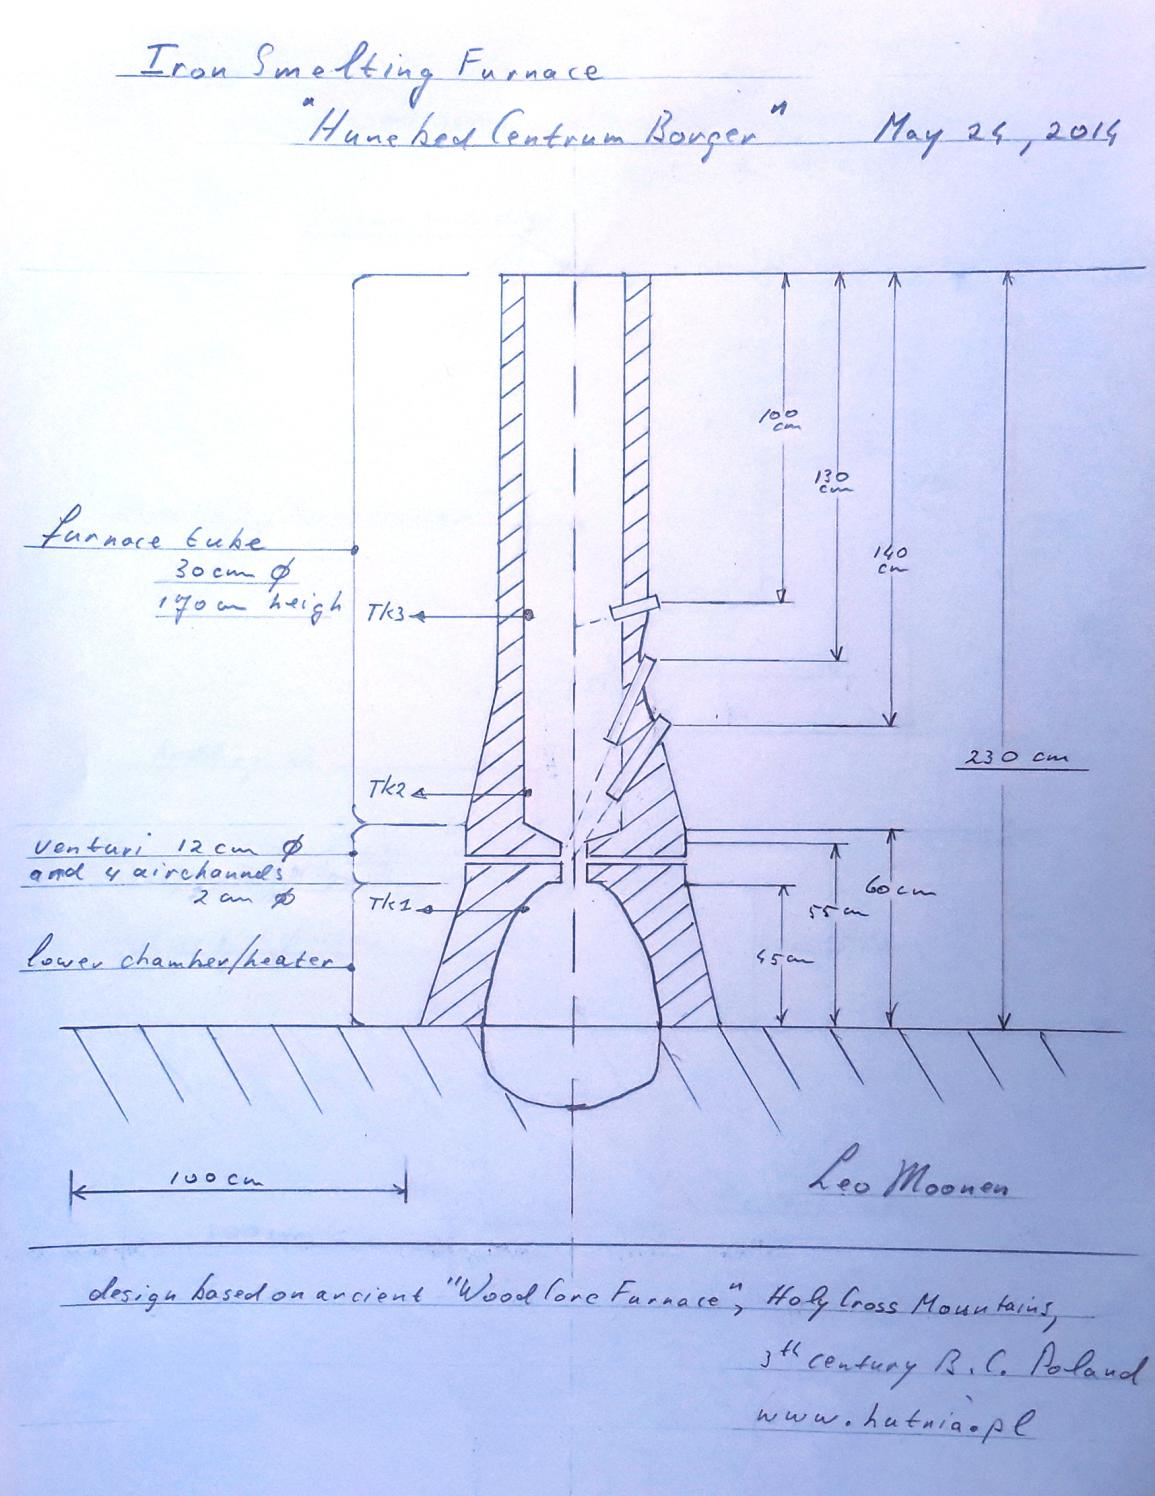 Drawing of the smelting furnace